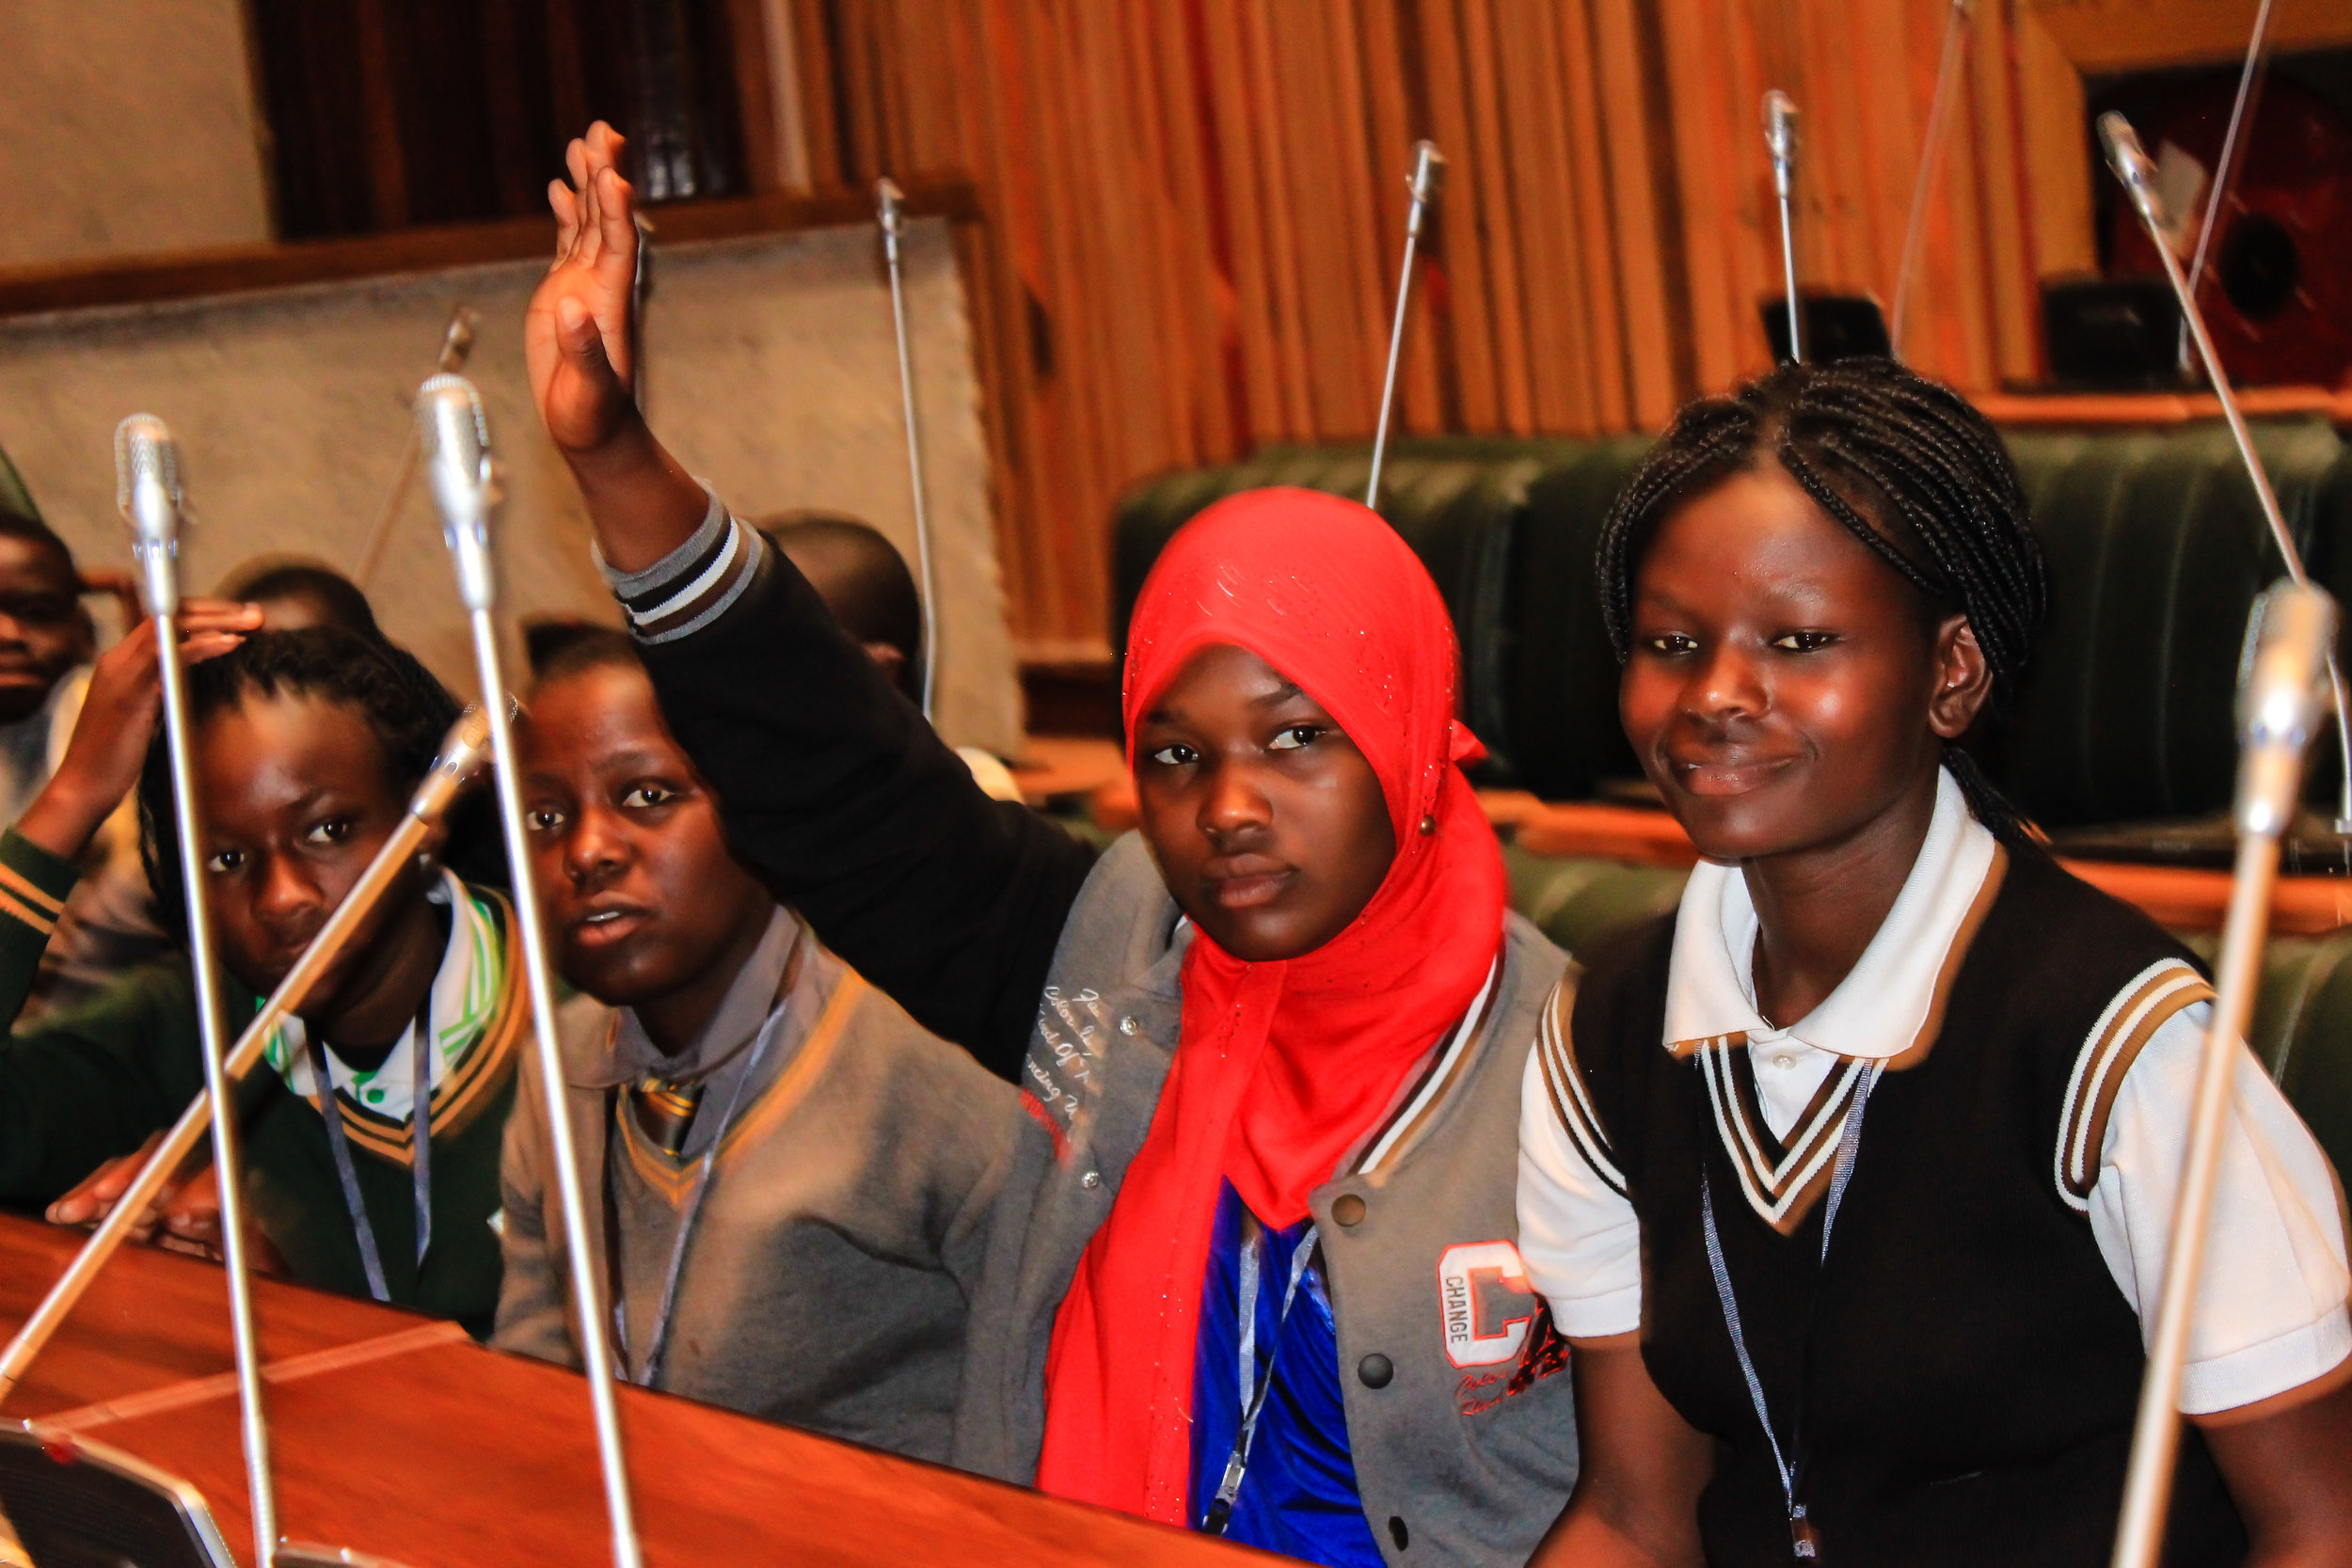 DREAMS girls visit the Zambian Parliament Chamber, April 26, 2017